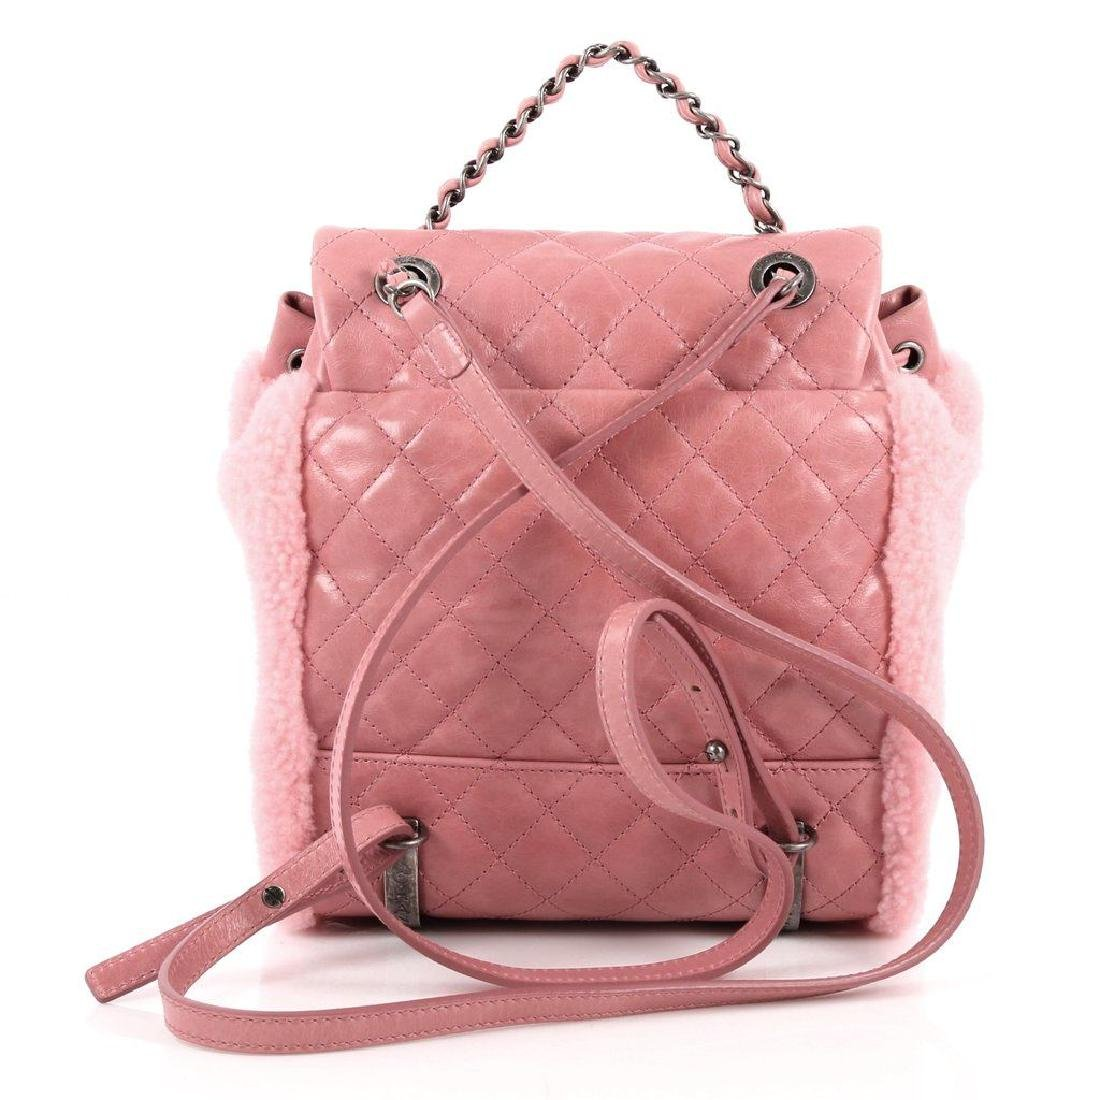 Authentic Chanel Backpack Pink Shearling Quilted - 4